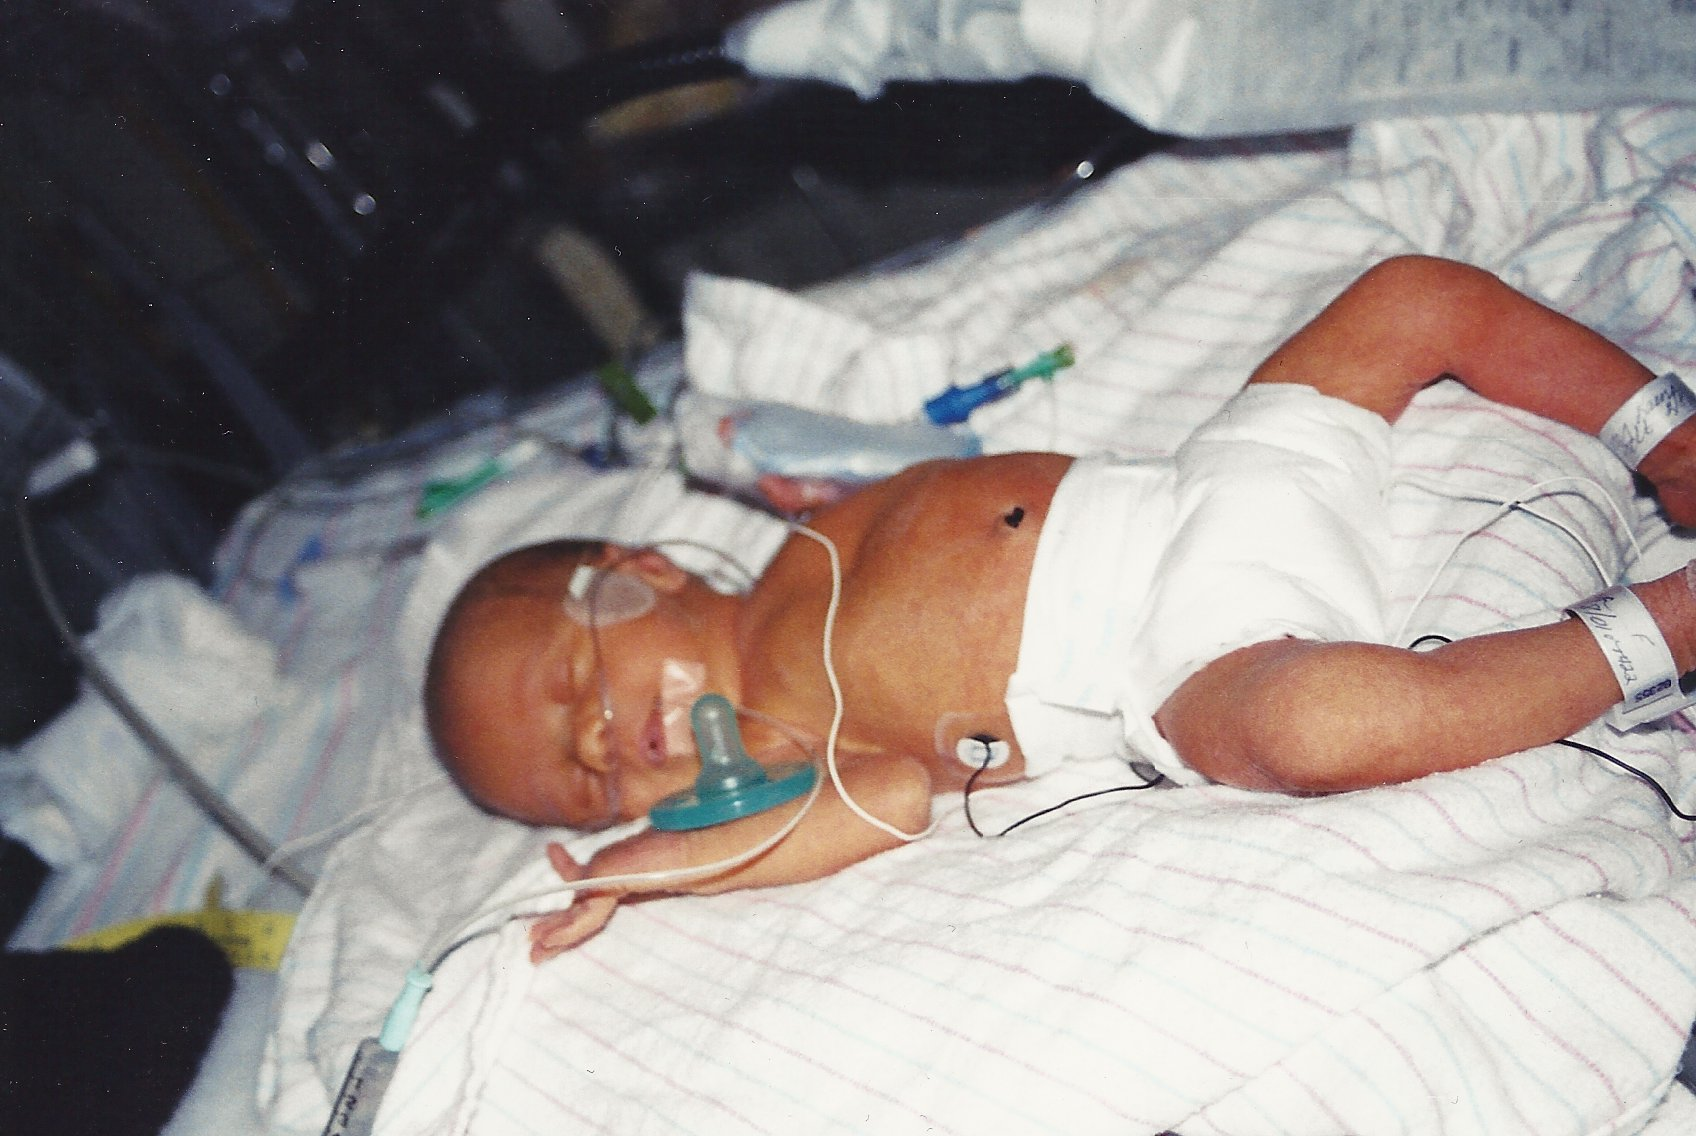 Preemie baby on radiant warmer with oxygen & pacifier